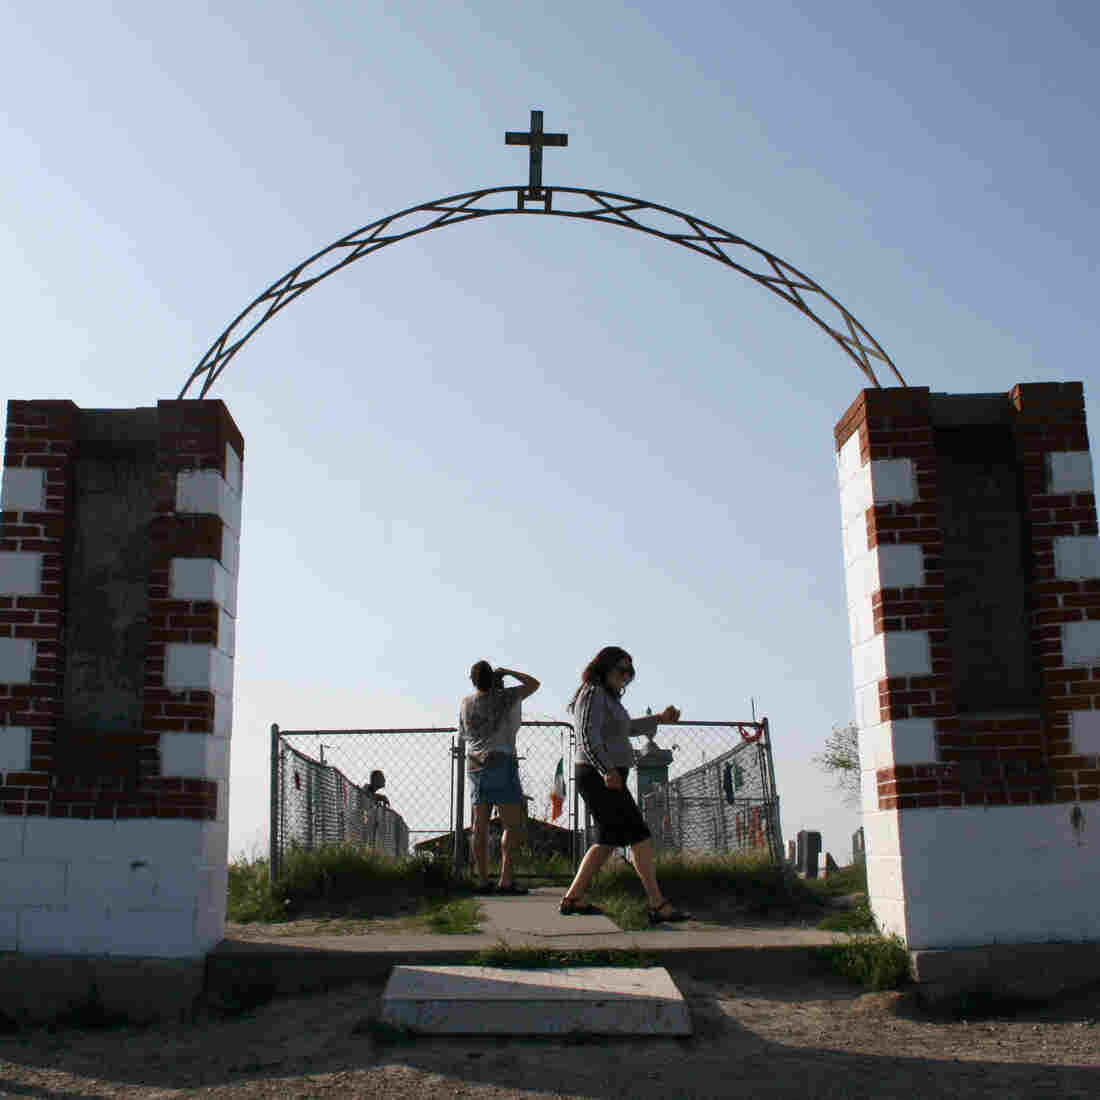 A memorial marks the site of the 1890 Wounded Knee Massacre in Wounded Knee, S.D. The town is located on the Pine Ridge Indian Reservation, home to the Oglala Sioux Tribe.